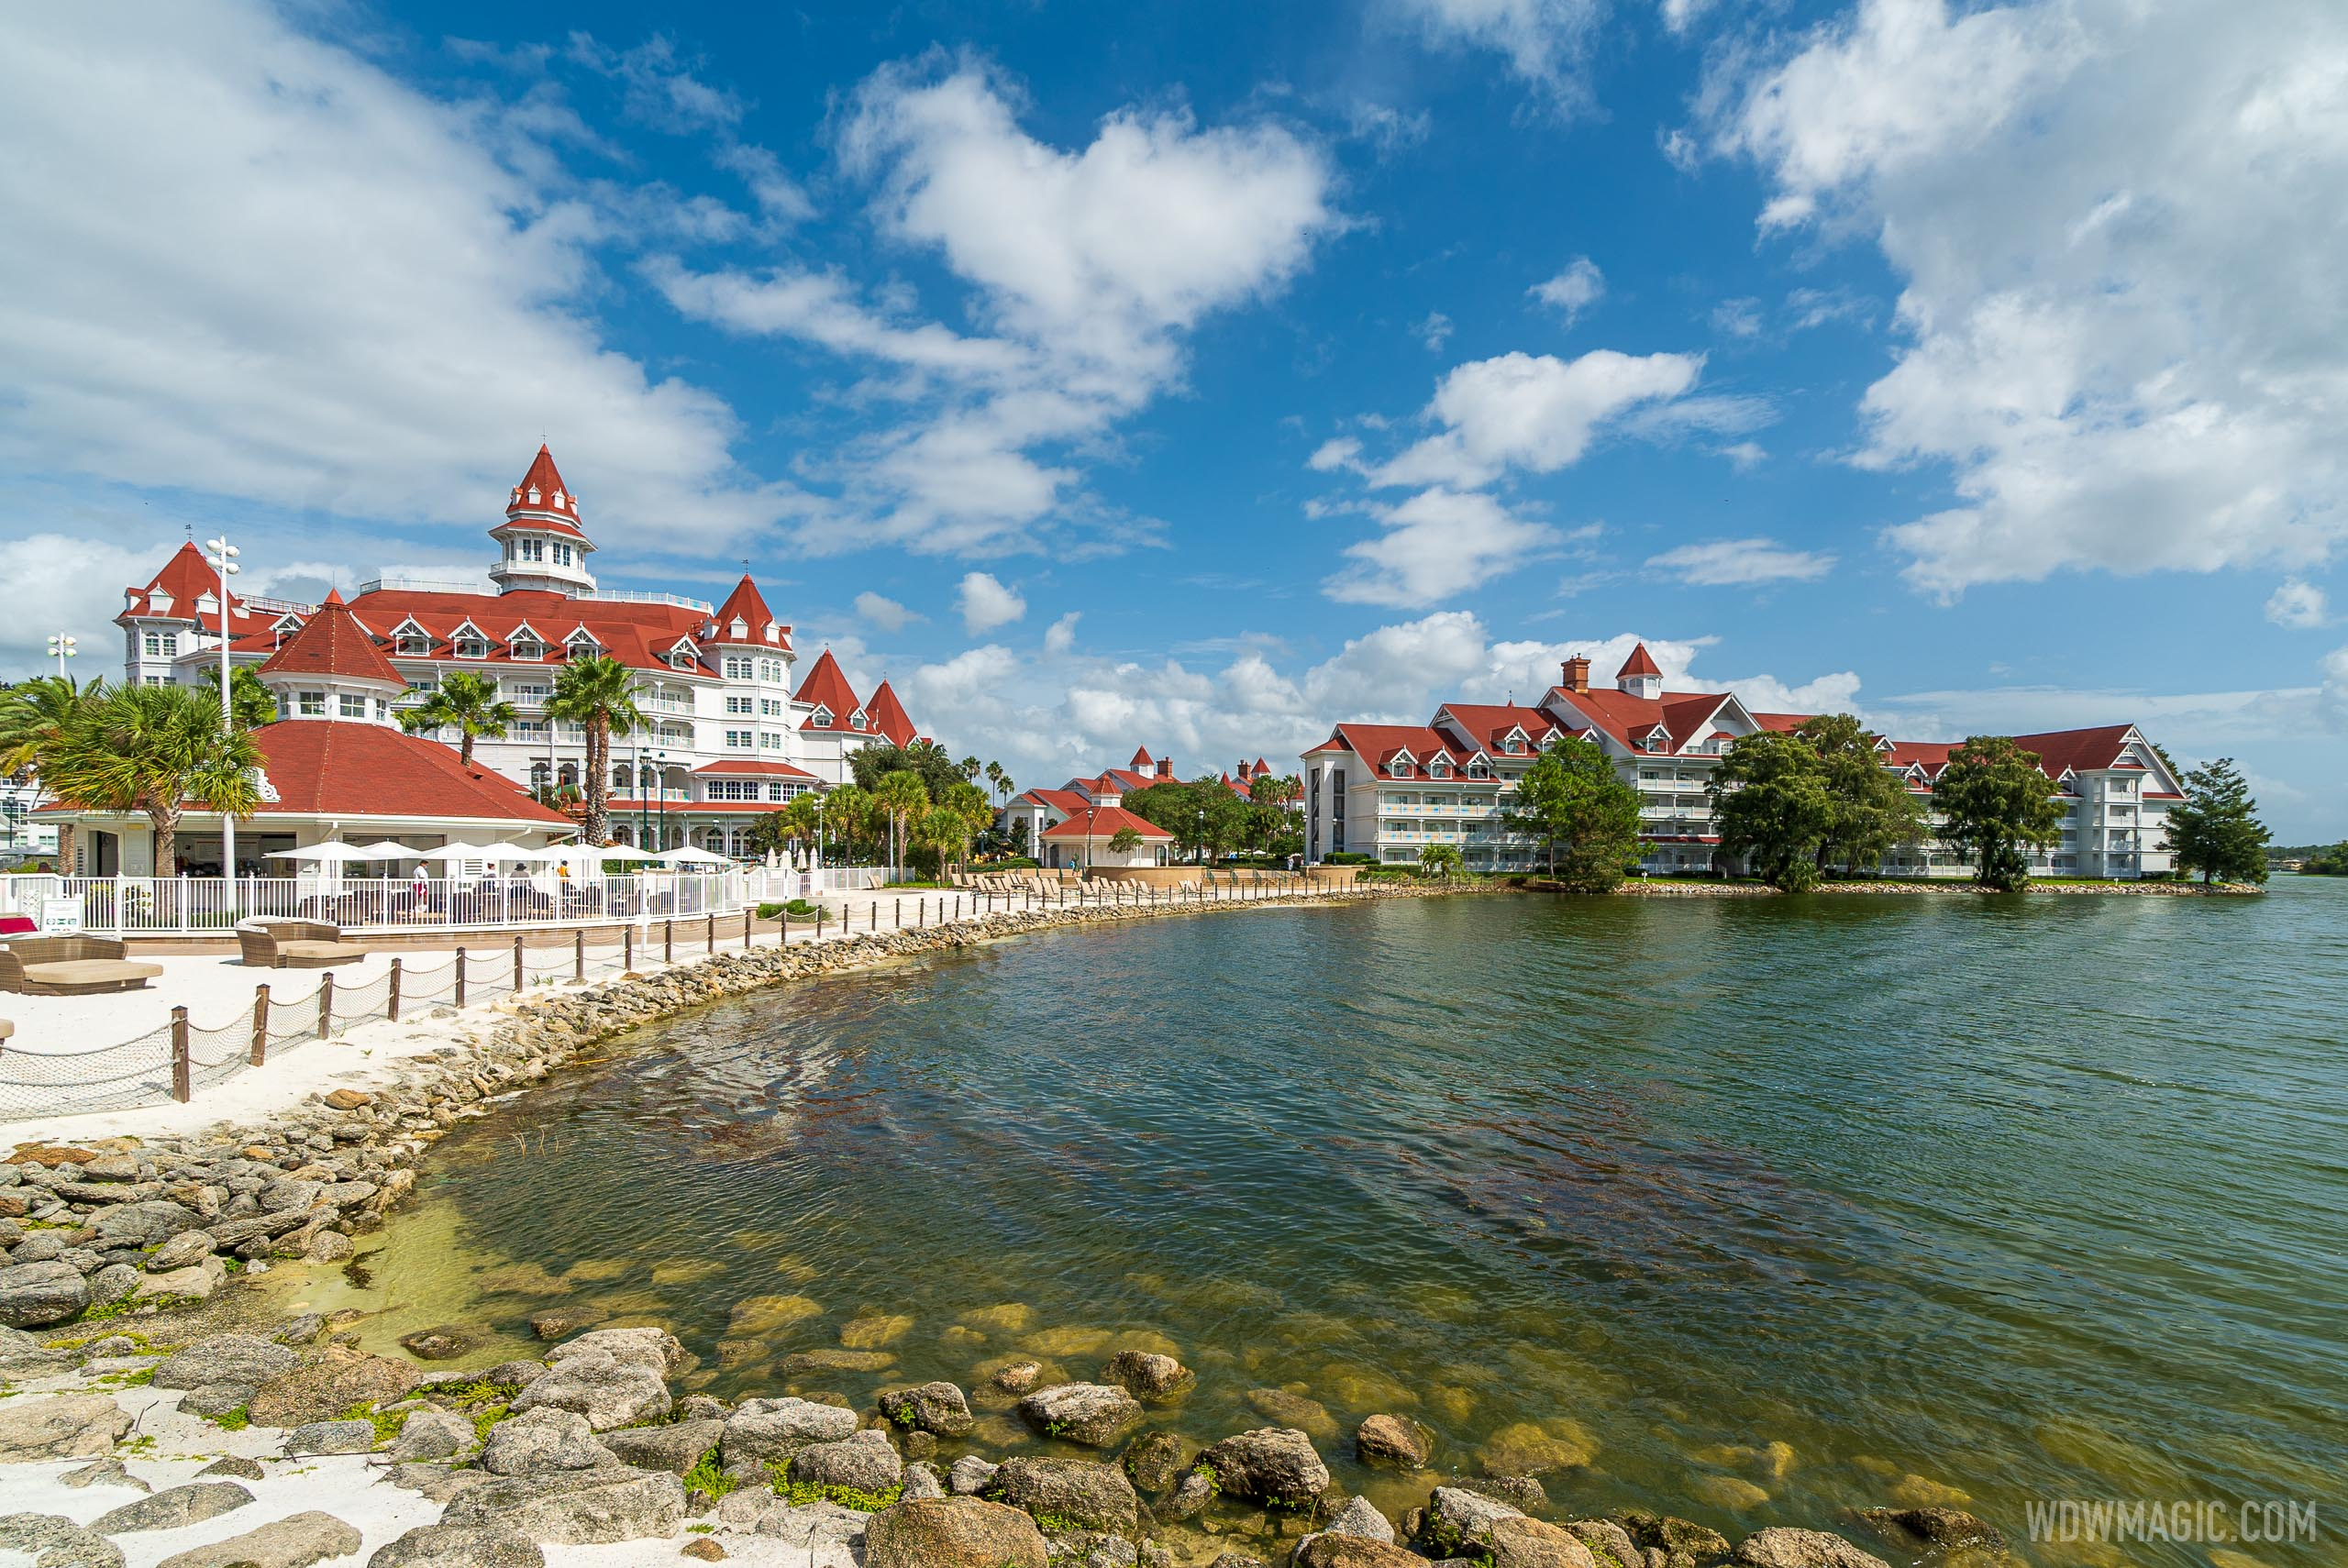 Disney's Grand Floridan Resort overview